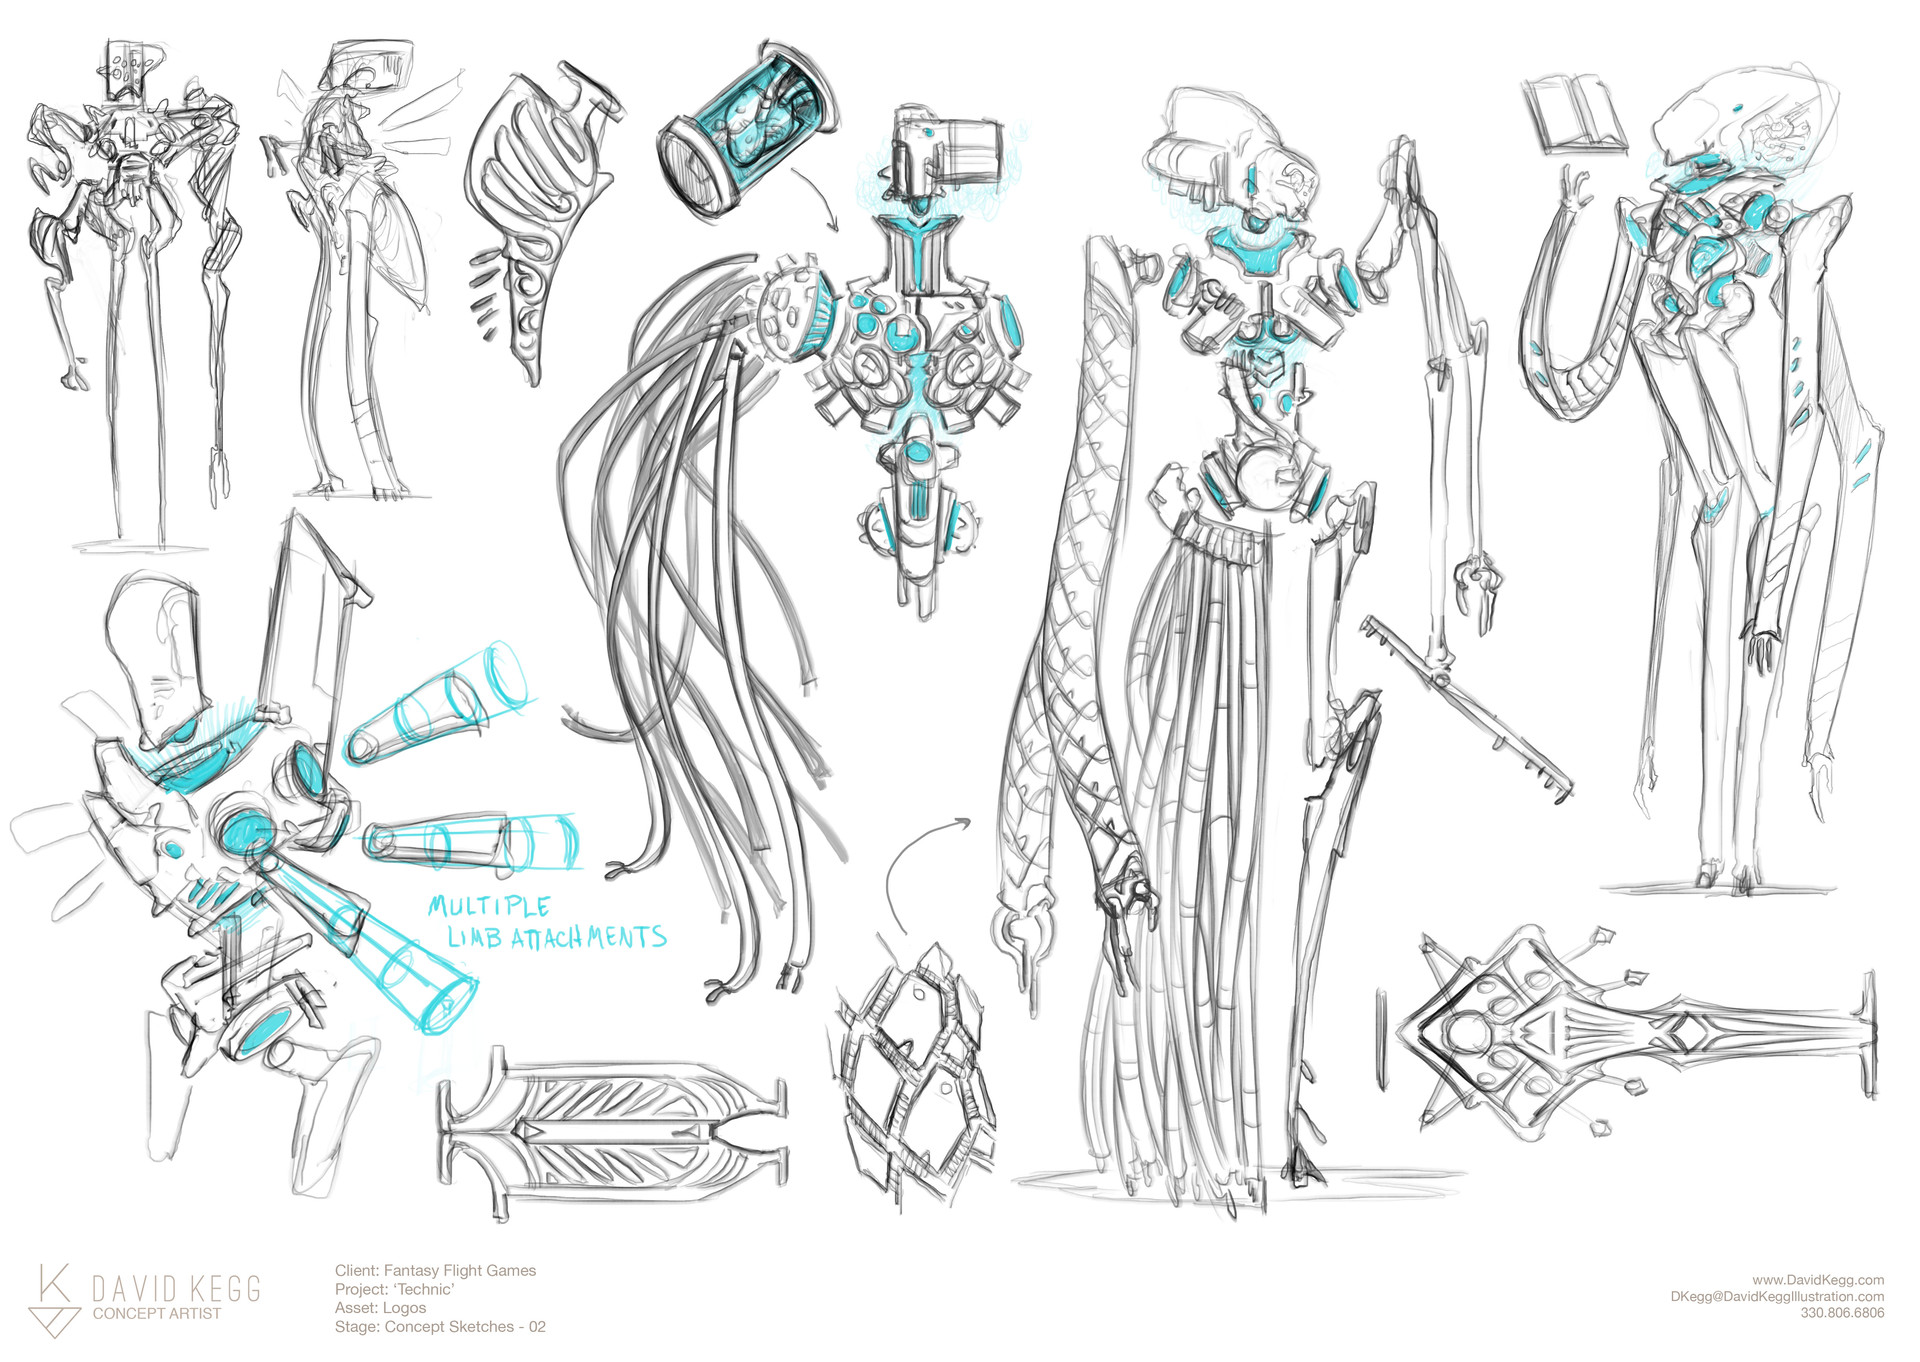 David kegg kegg ffgtechnic logos conceptsketches 02